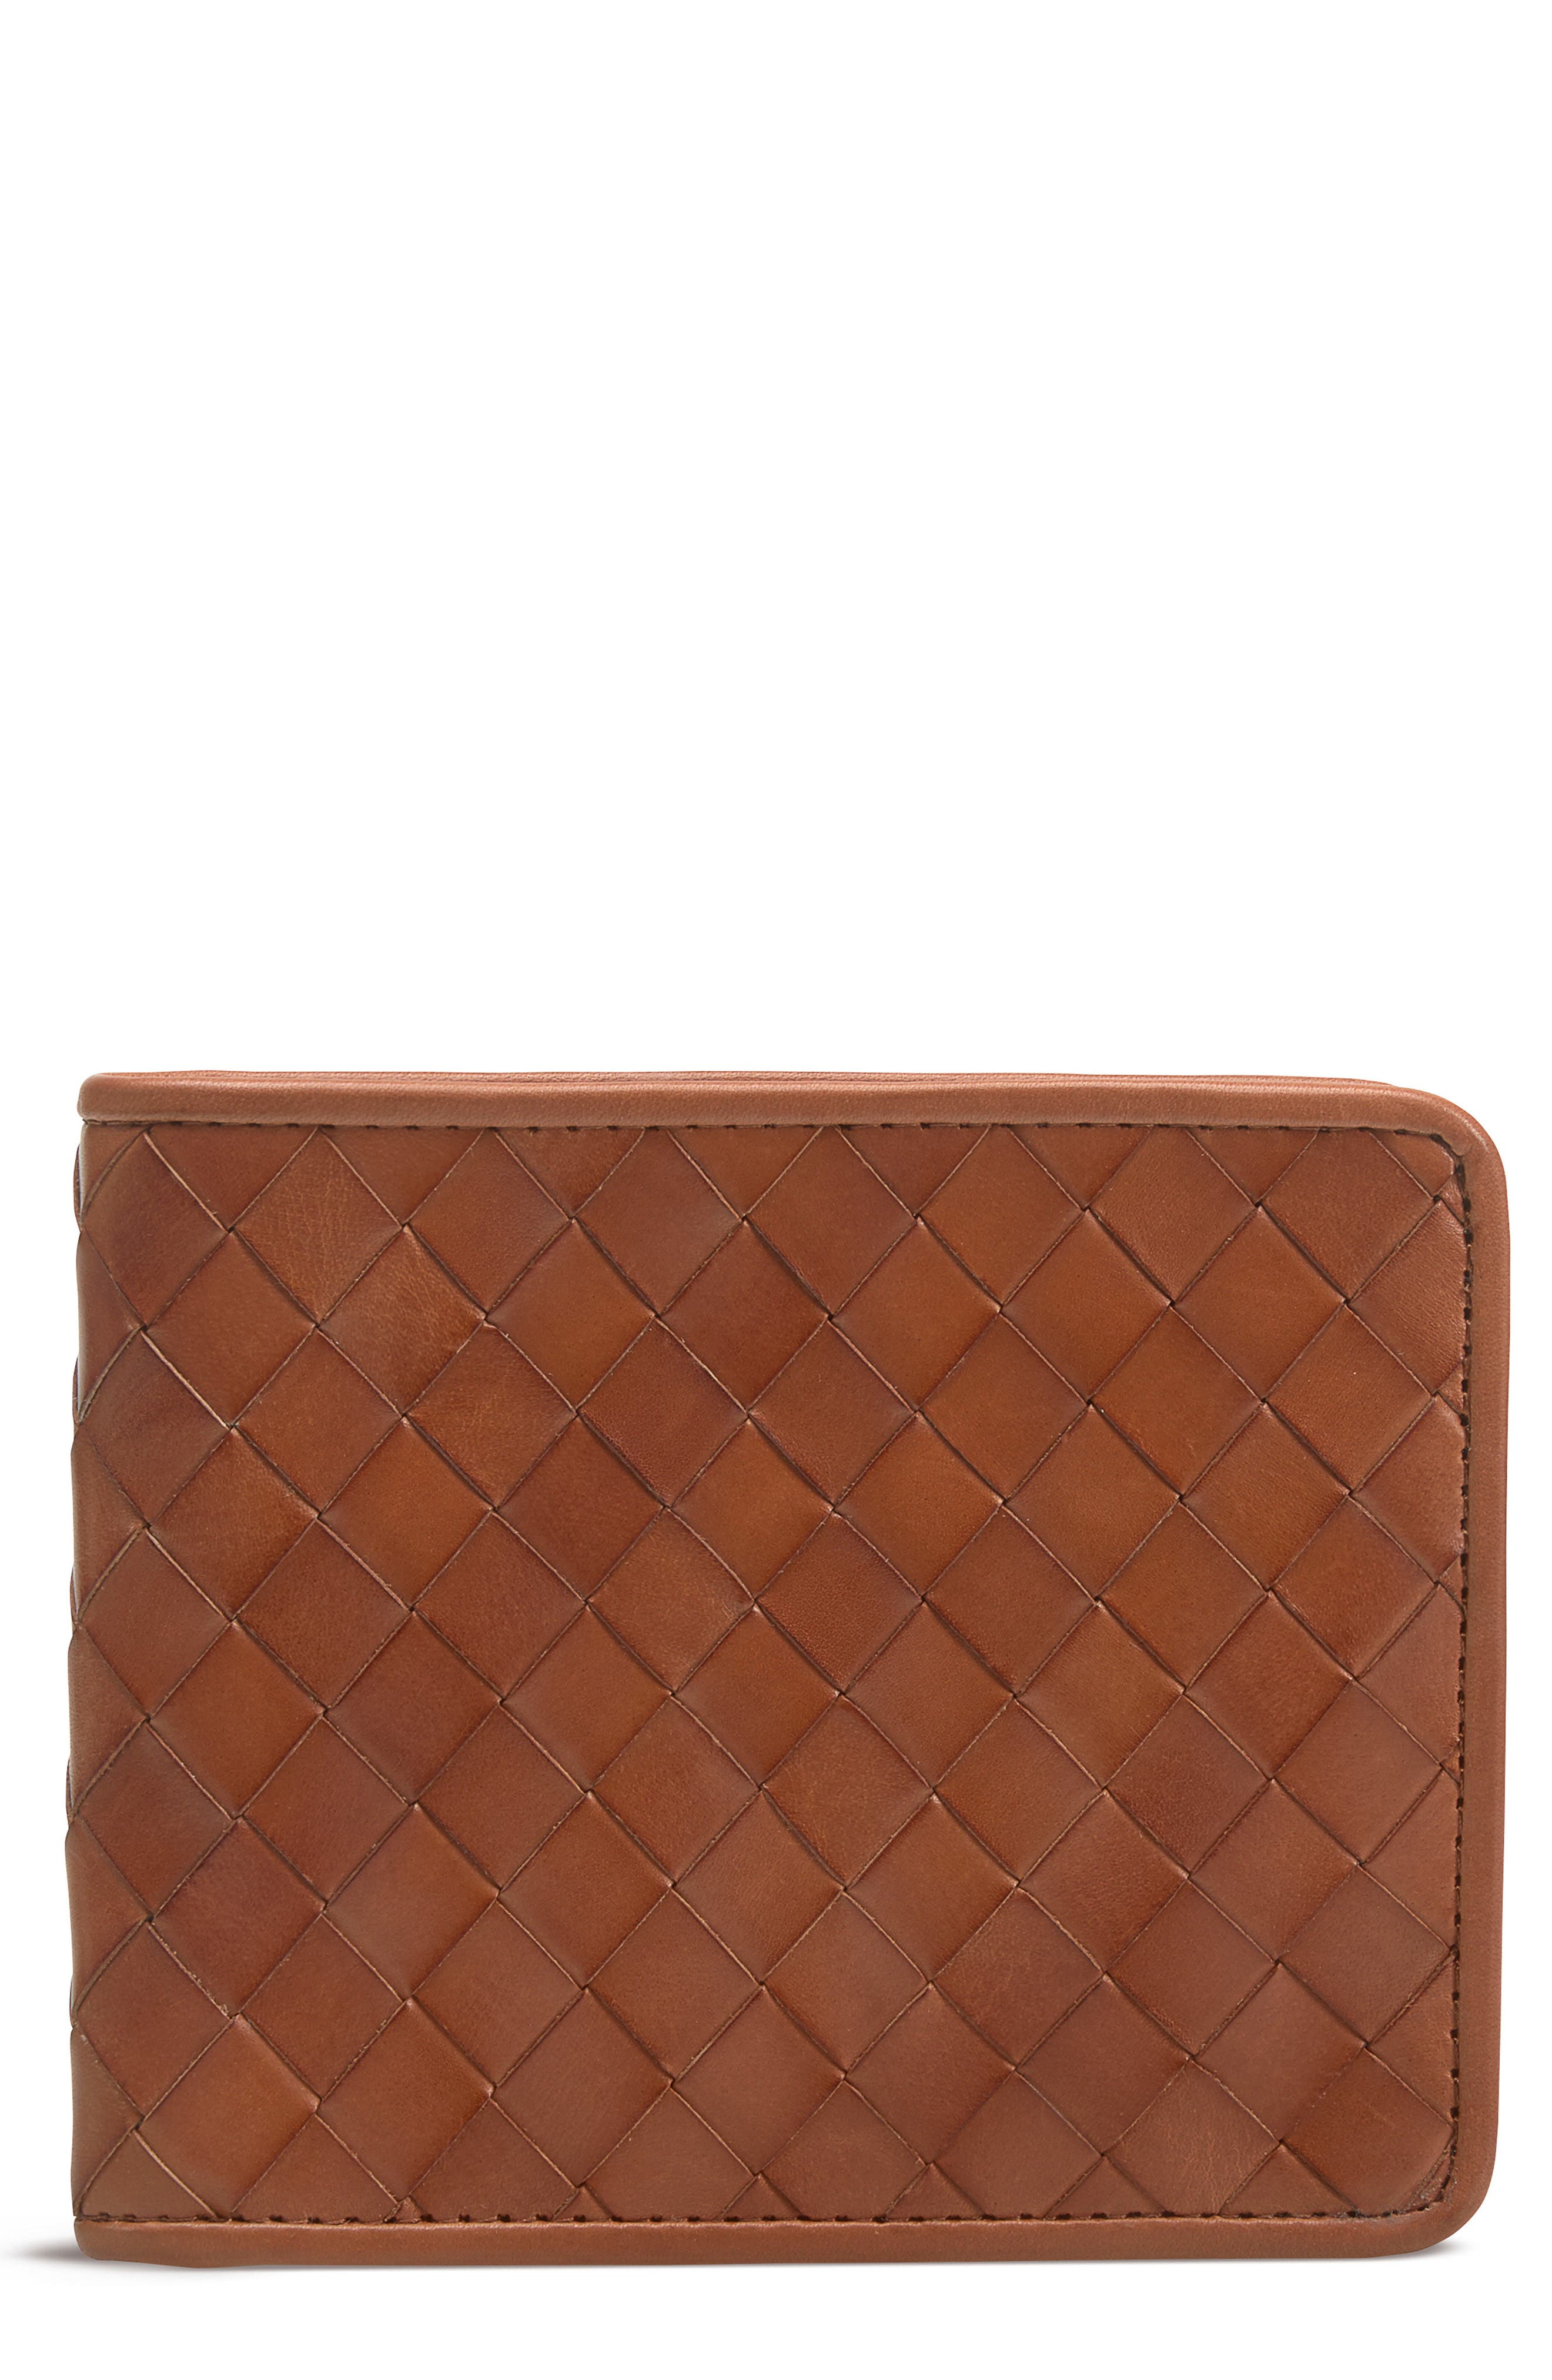 Woven Leather Wallet,                             Main thumbnail 1, color,                             240